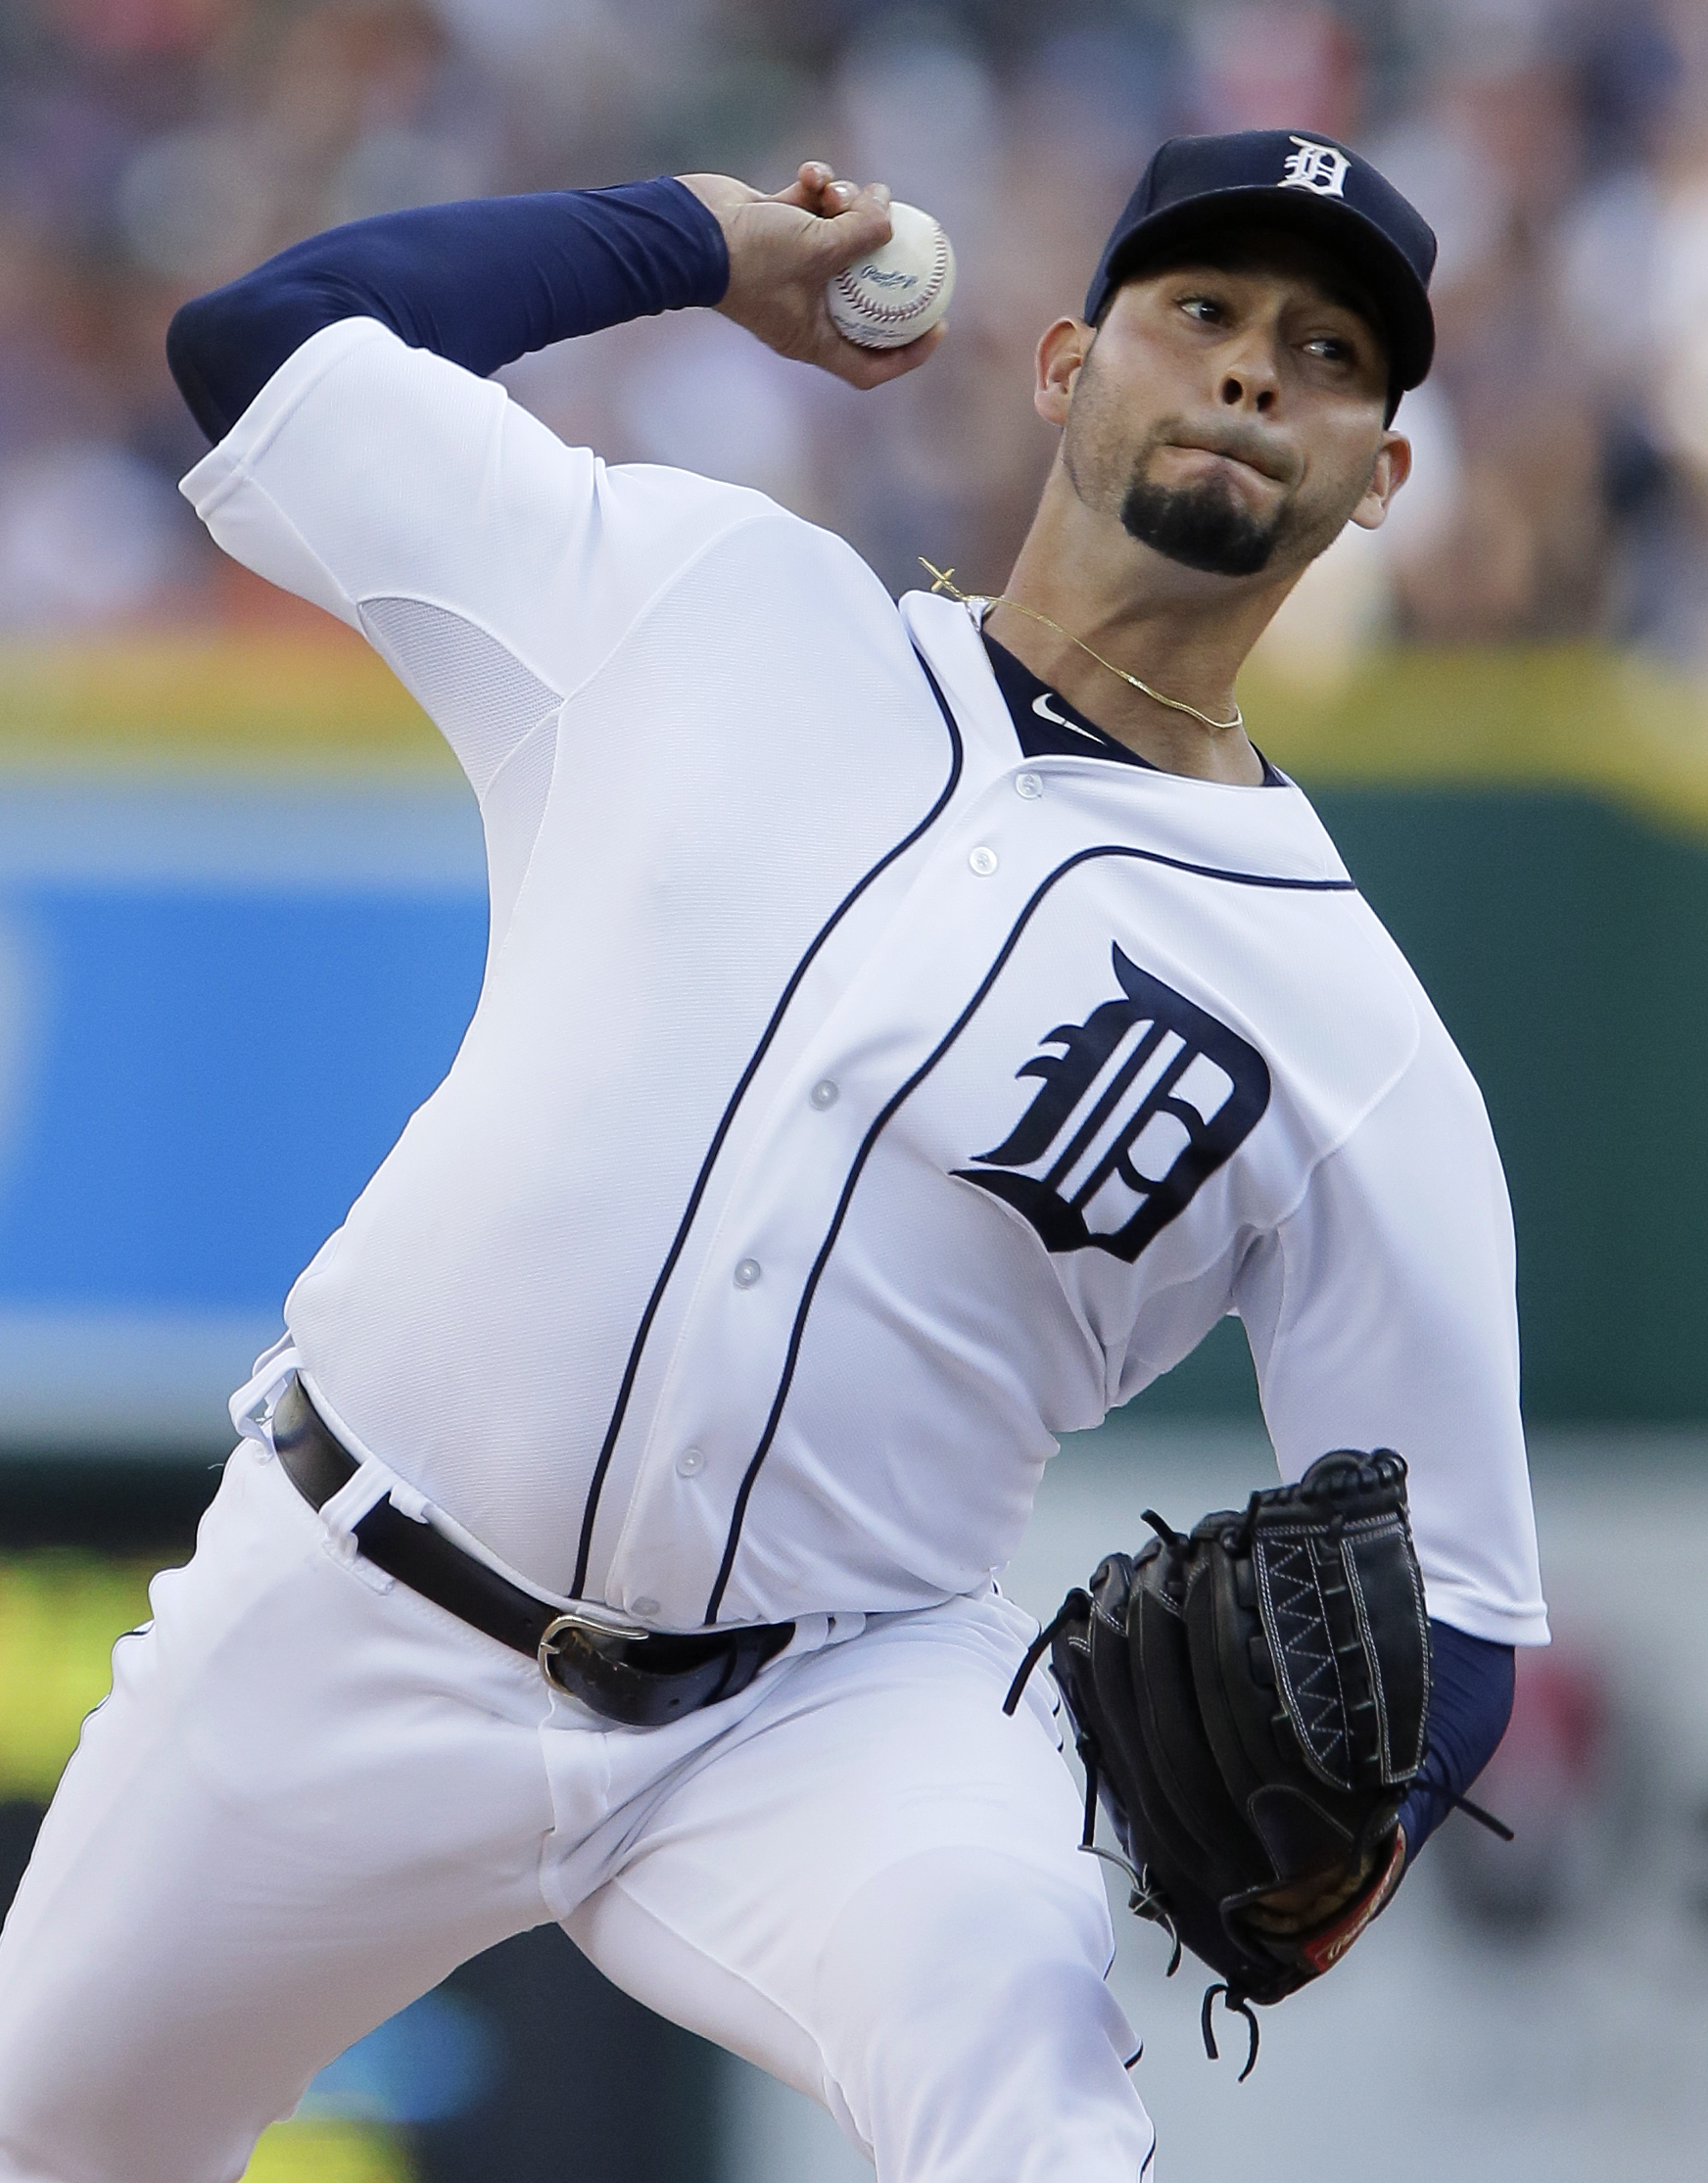 Detroit Tigers pitcher Anibal Sanchez delivers against the Seattle Mariners during the second inning of a baseball game Wednesday, July 22, 2015 in Detroit. (AP Photo/Duane Burleson)